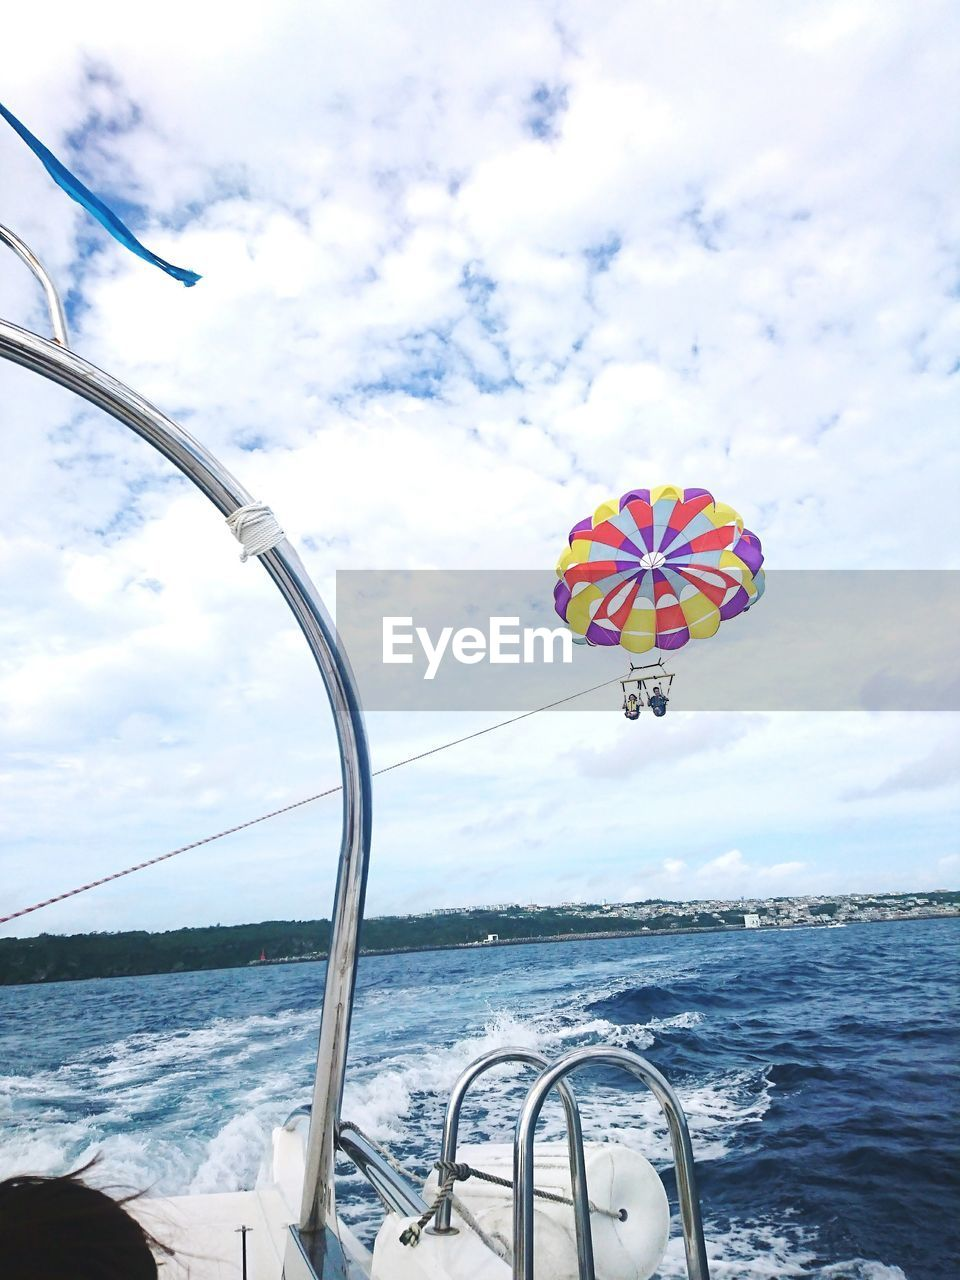 sea, cloud - sky, water, sky, transportation, mode of transport, horizon over water, day, multi colored, nature, nautical vessel, beauty in nature, flying, adventure, outdoors, scenics, no people, sailing, parachute